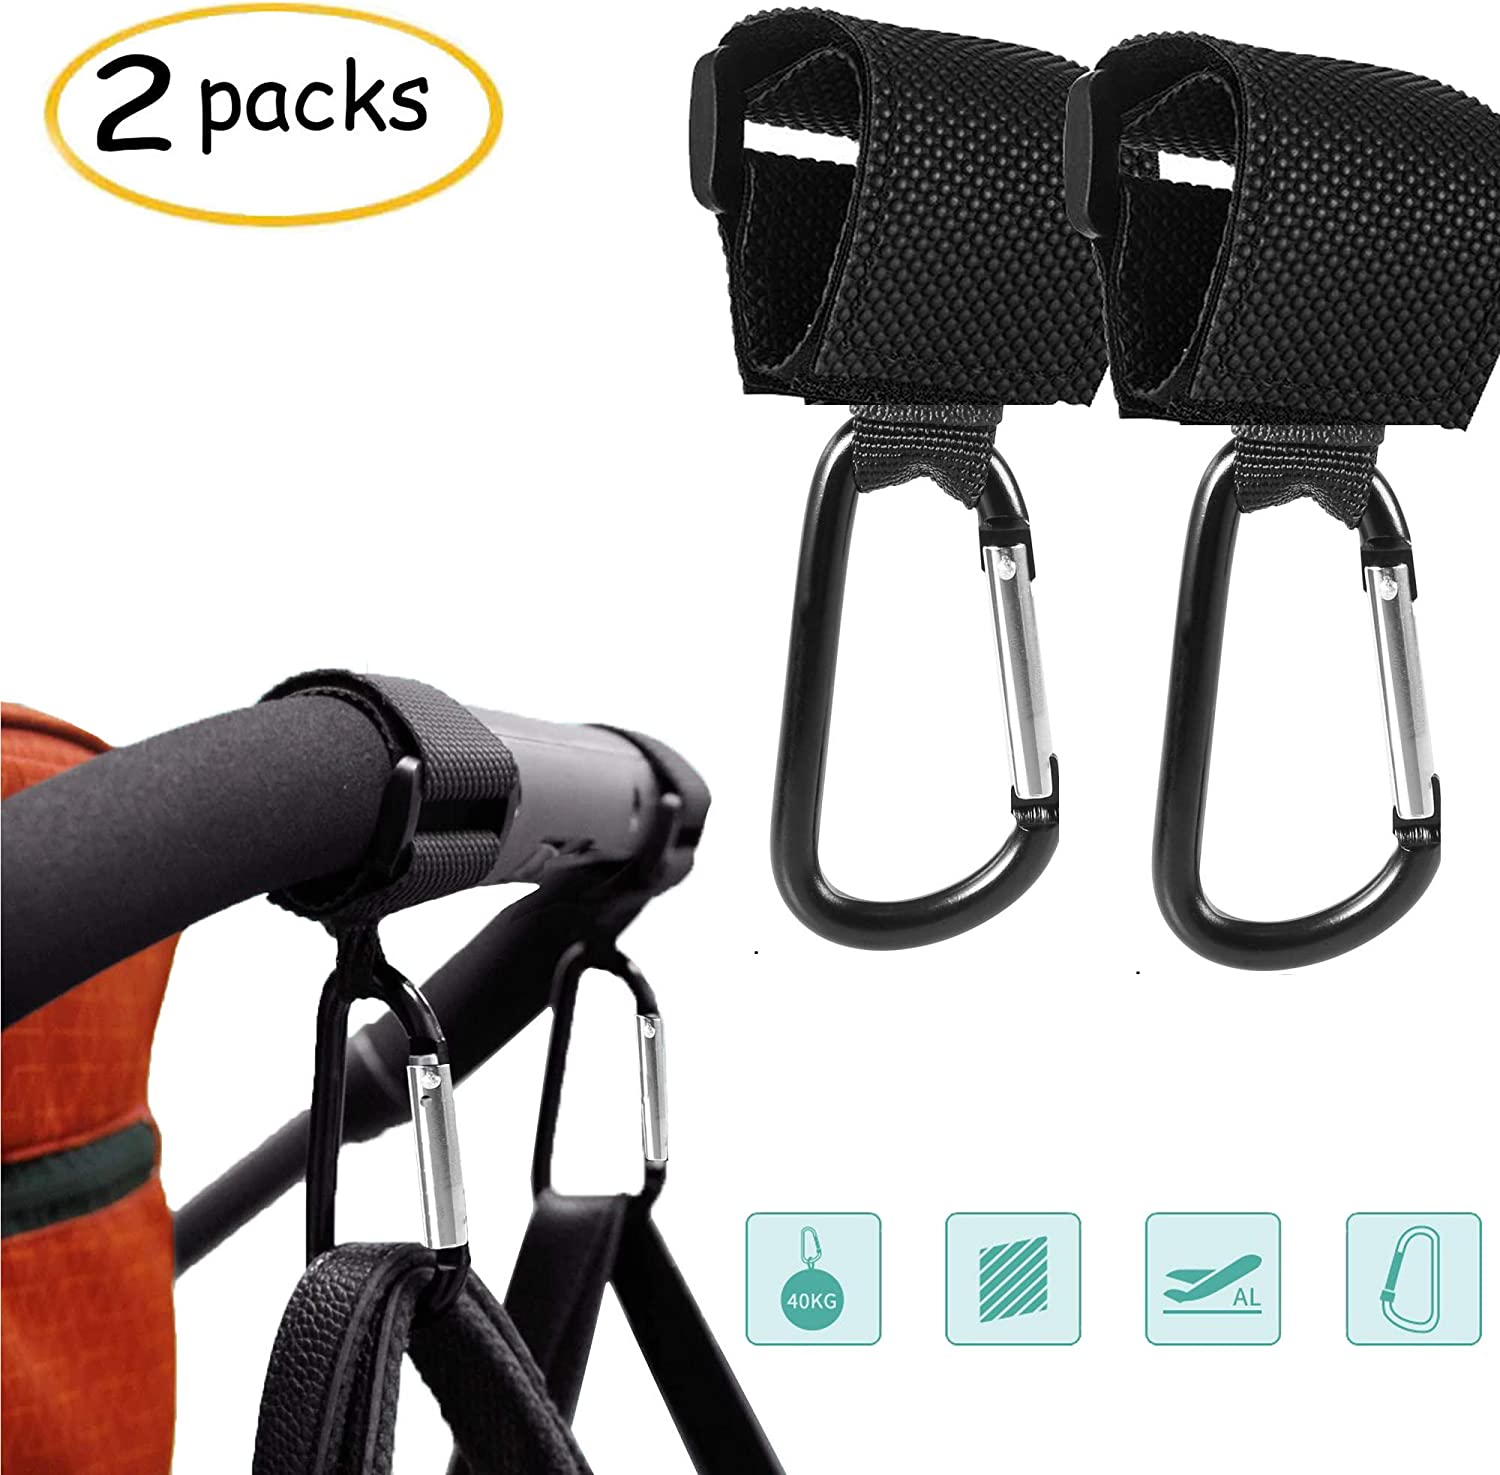 Multi-Purpose for Changing Bag Holder and Shopping Bag,4PCS HyAdierTech Buggy Clips Stroller Hooks Pram Pushchair Clips for Changing /&Shopping Bag Safely Shopping Secure Hooks,Universal Fit